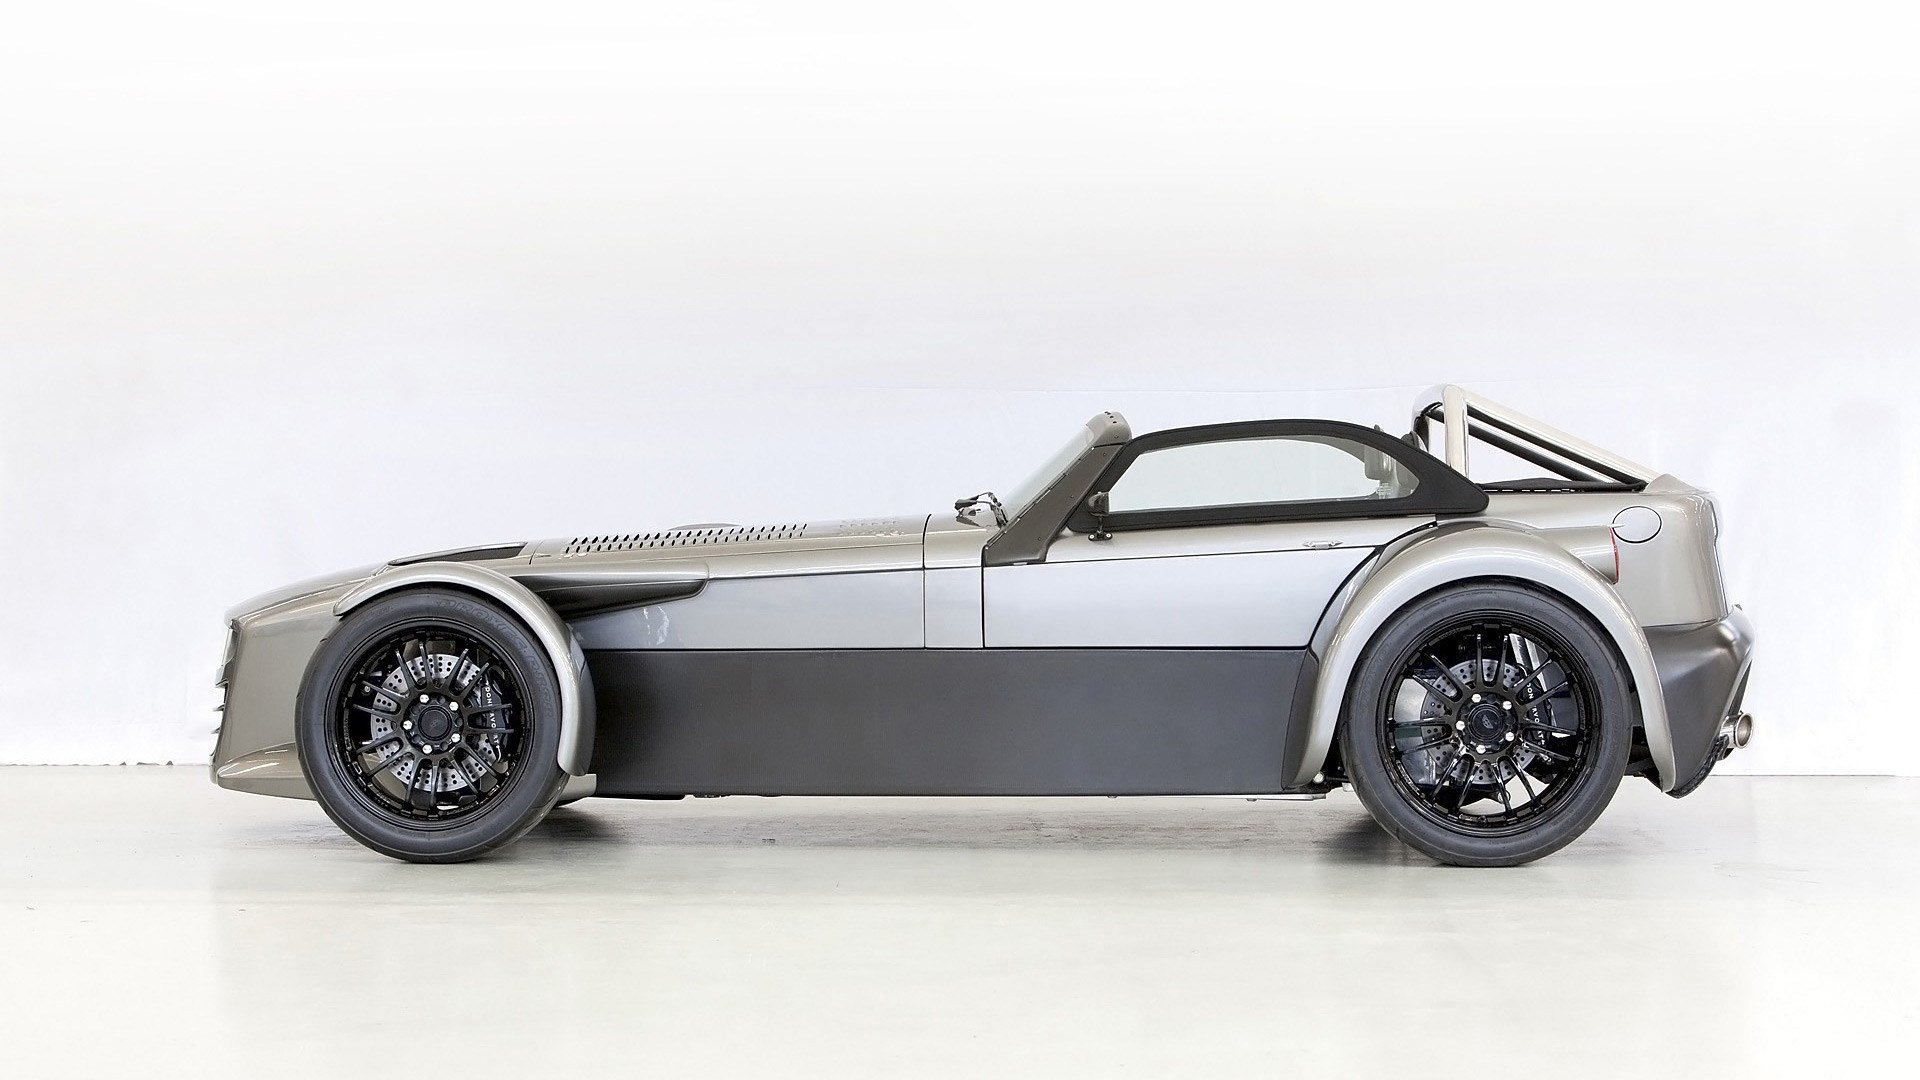 New 2011 Donkervoort D8 Gto Wallpapers Hd Images Wsupercars On This Month